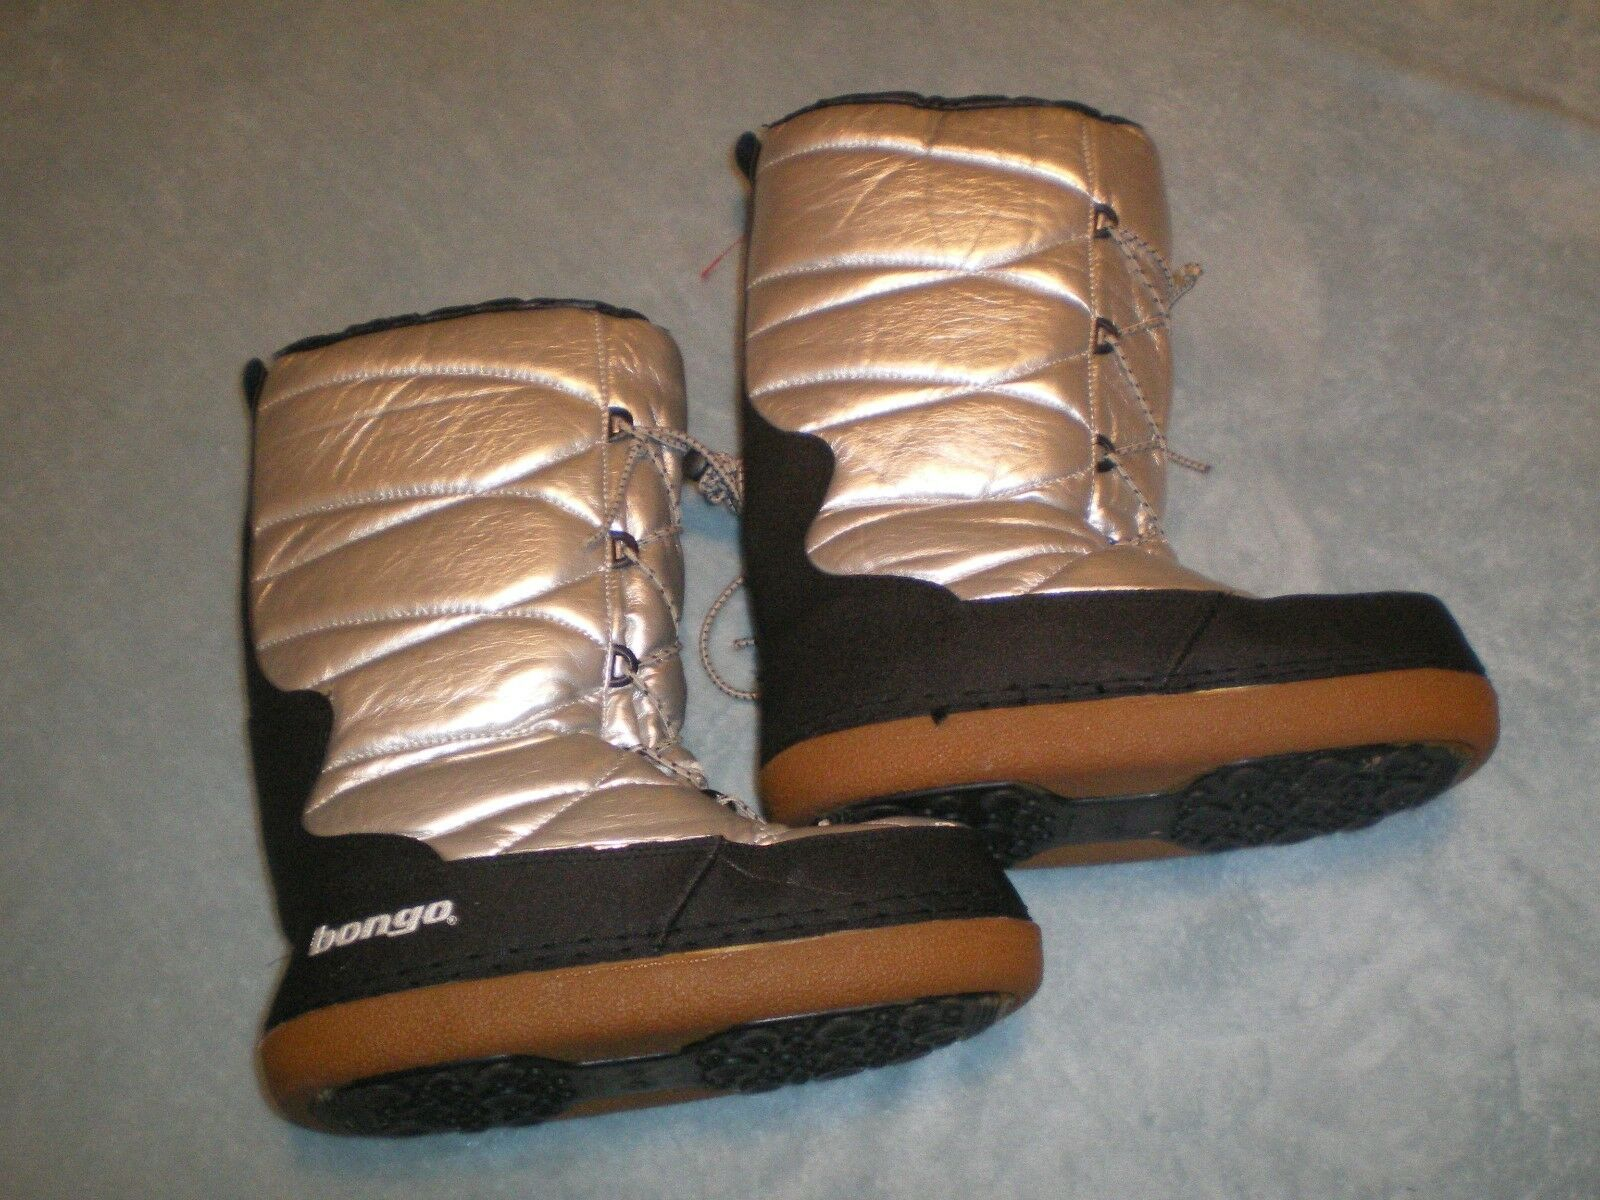 BONGO Boots silver snow winter size 39-40 or approx u.s. size Size 9